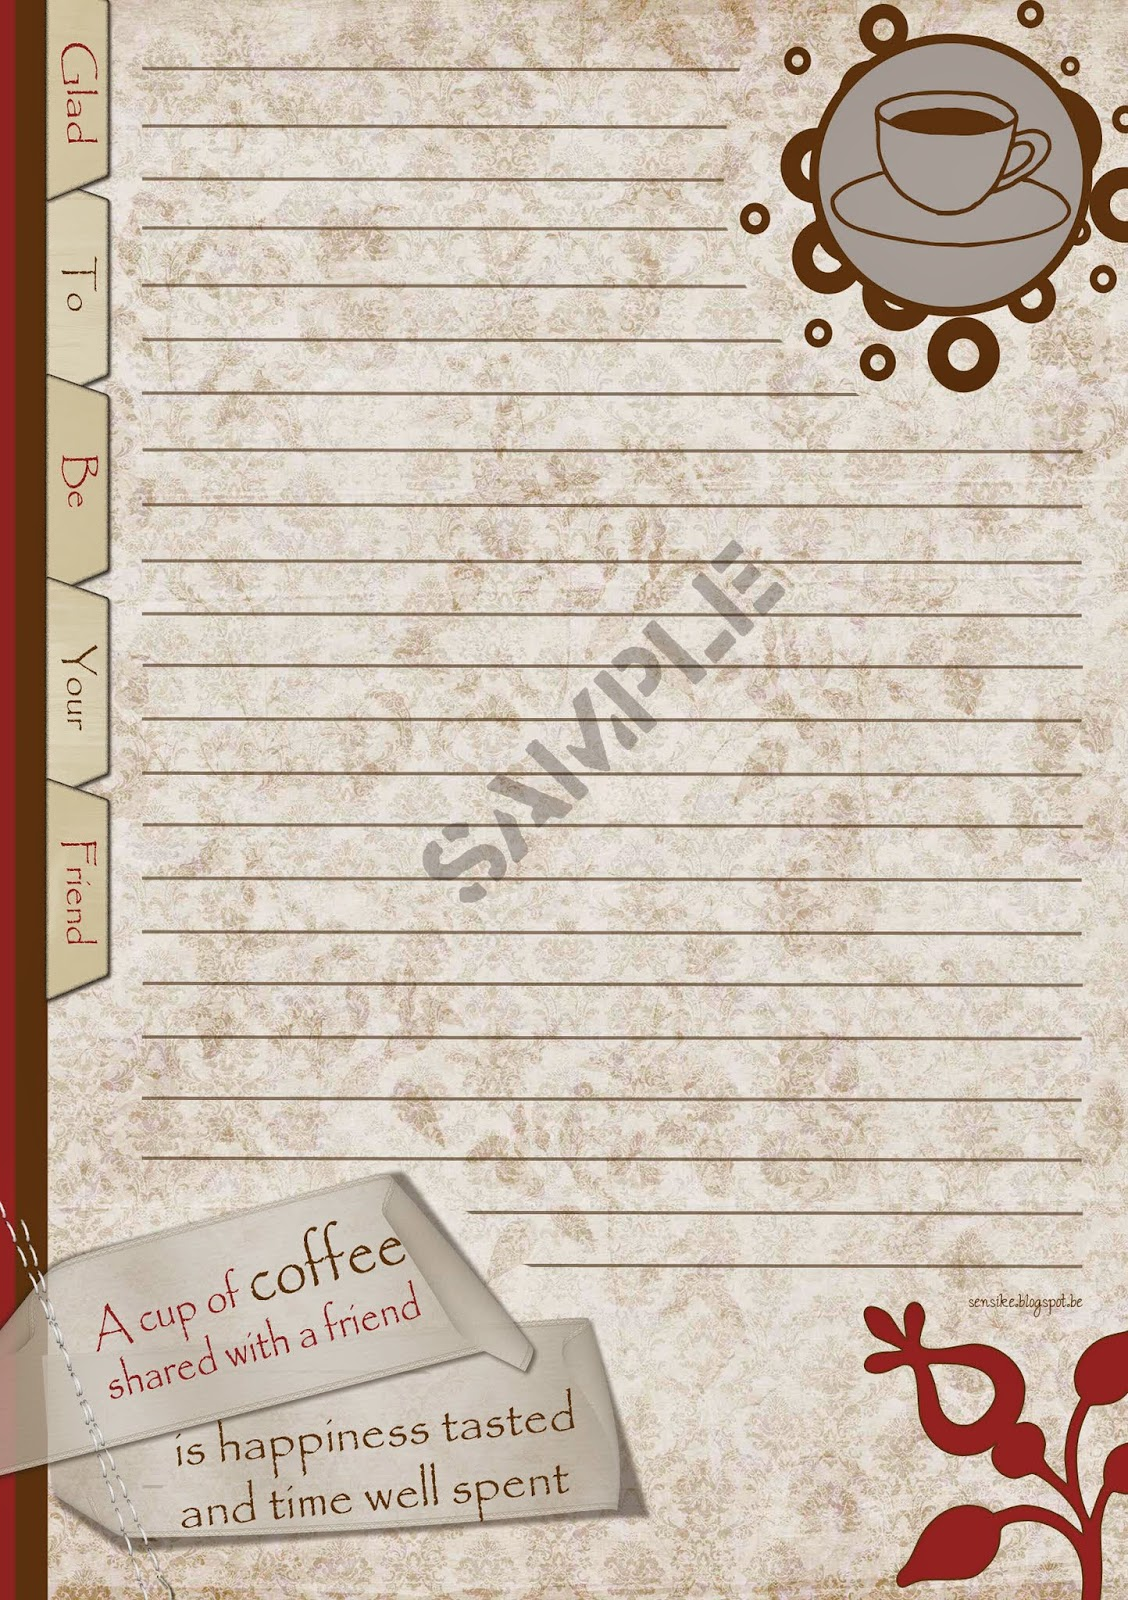 briefpapier koffie, stationery coffe